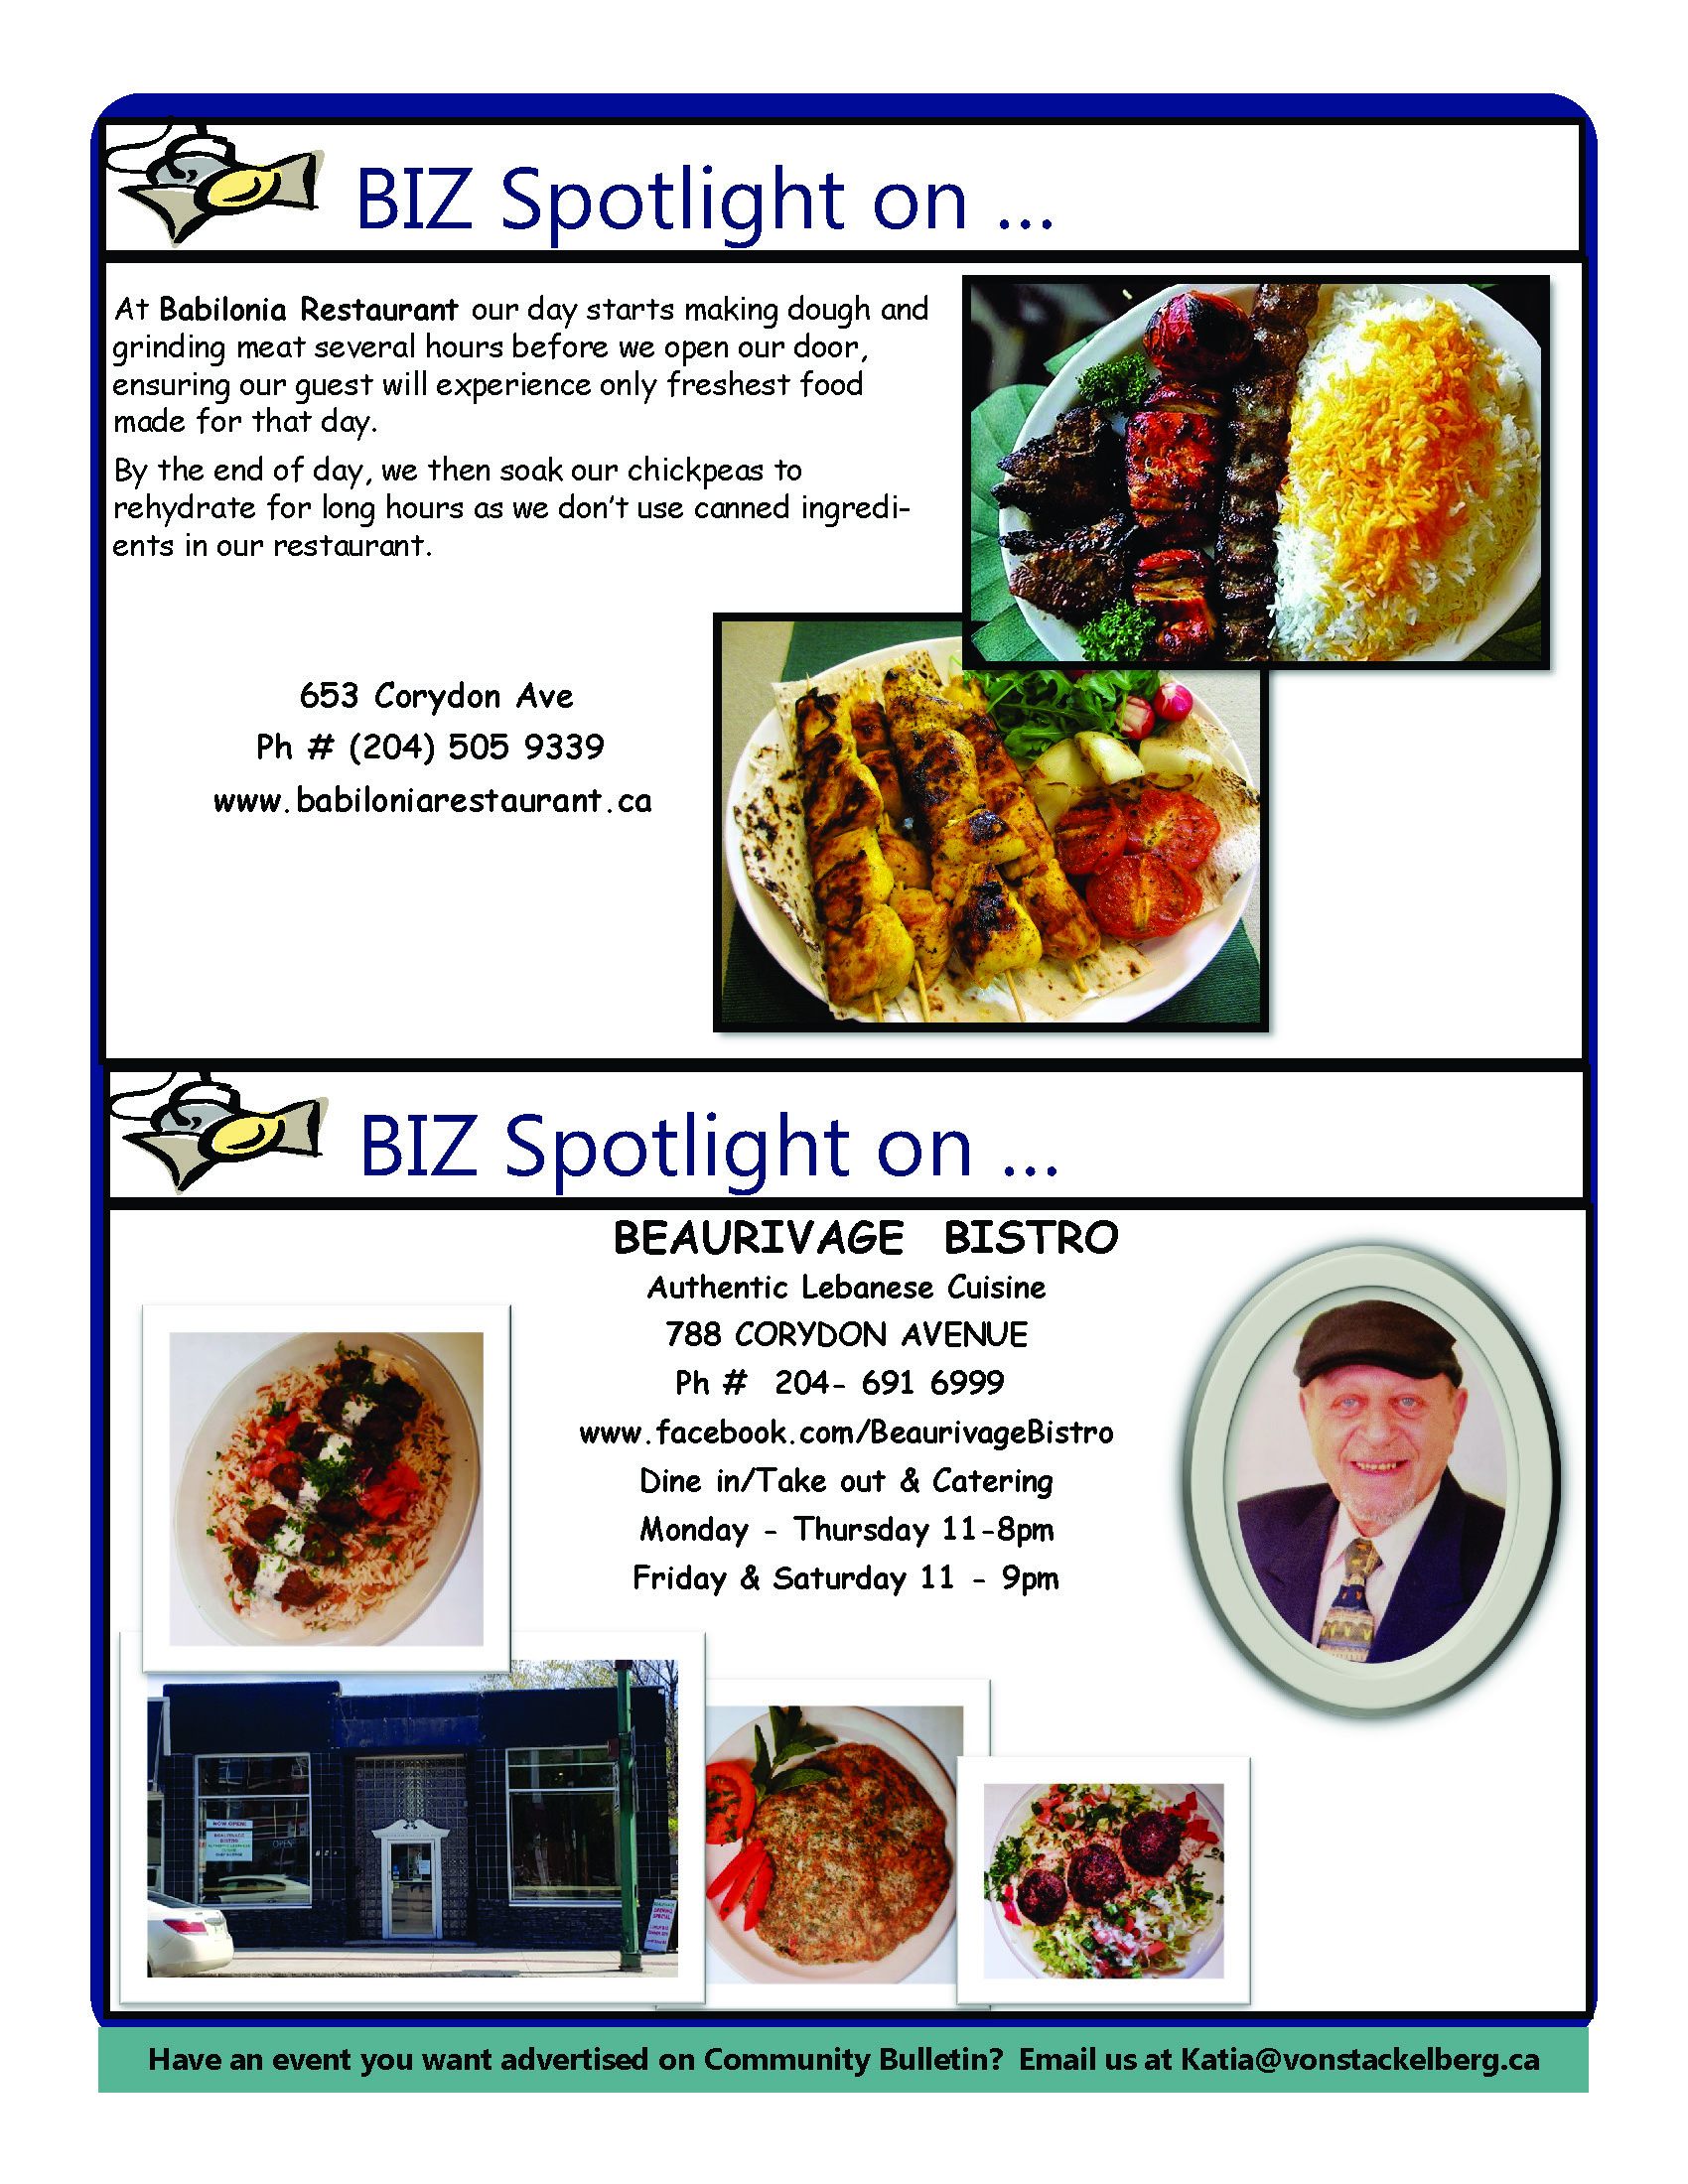 2019 Summer-CORYDON AVE. BIZ Newsletter_Page_07.jpg